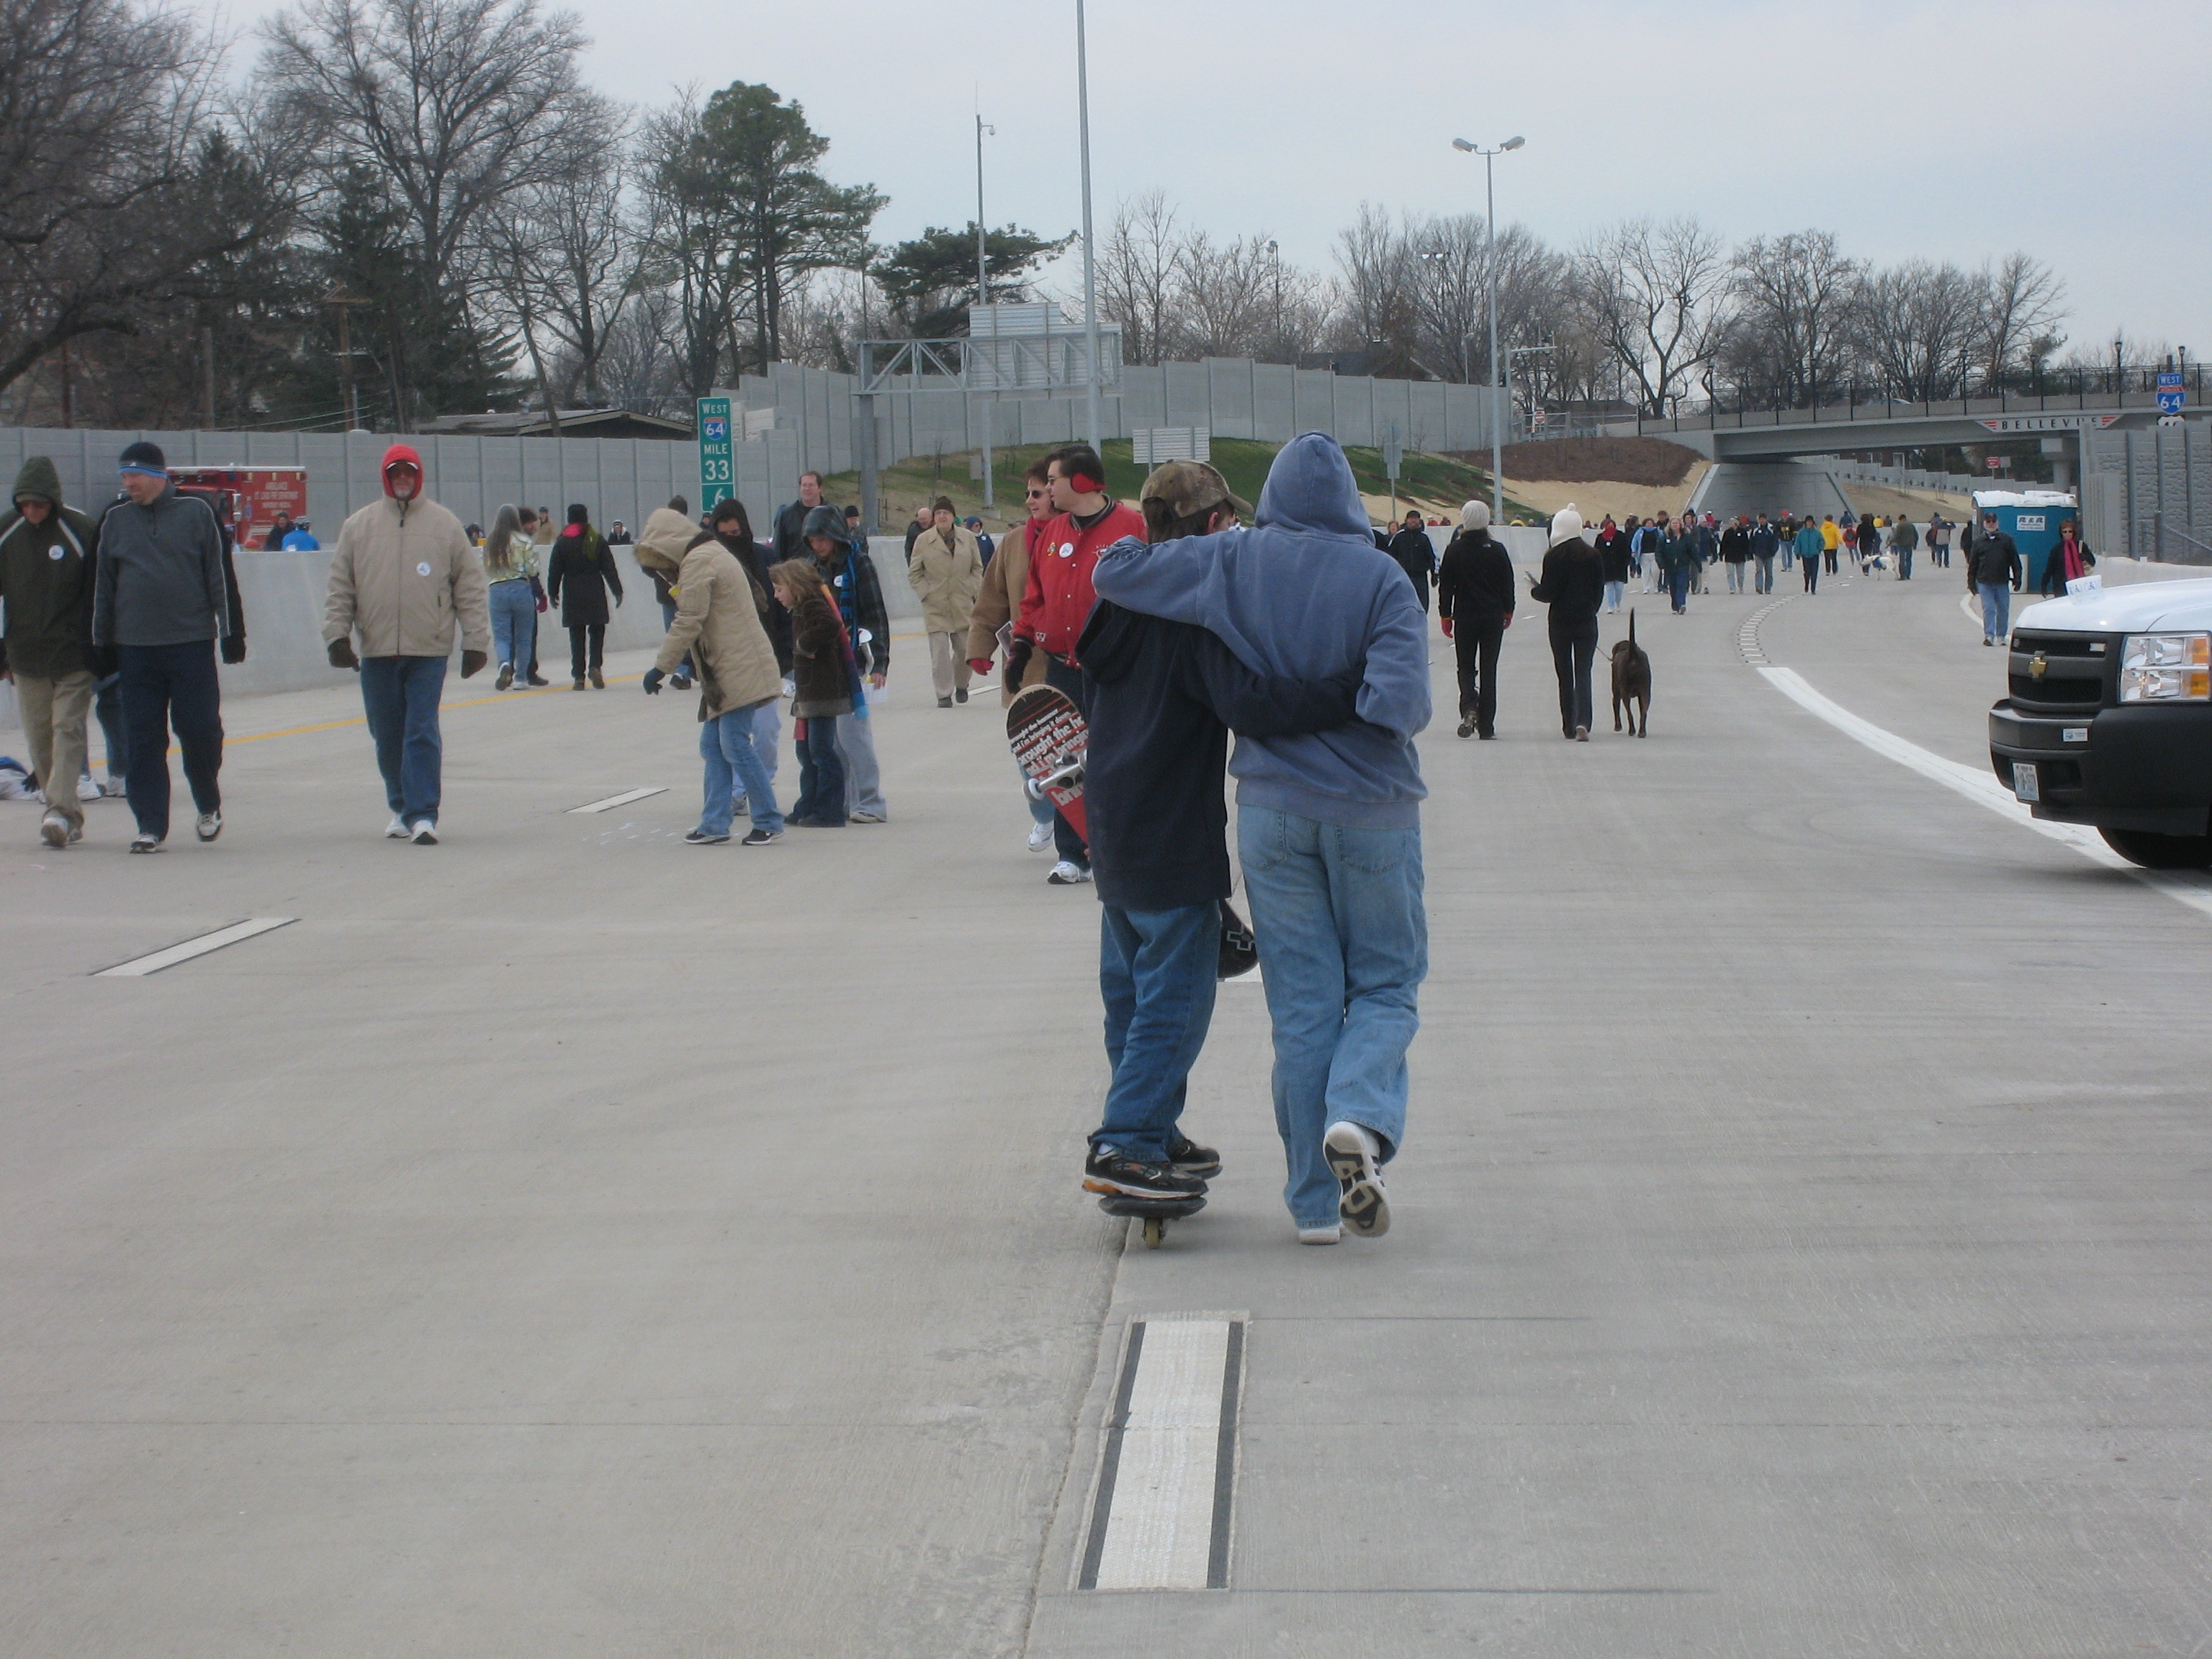 St. Louis Hwy 64 Re-opening day - walk on the highway